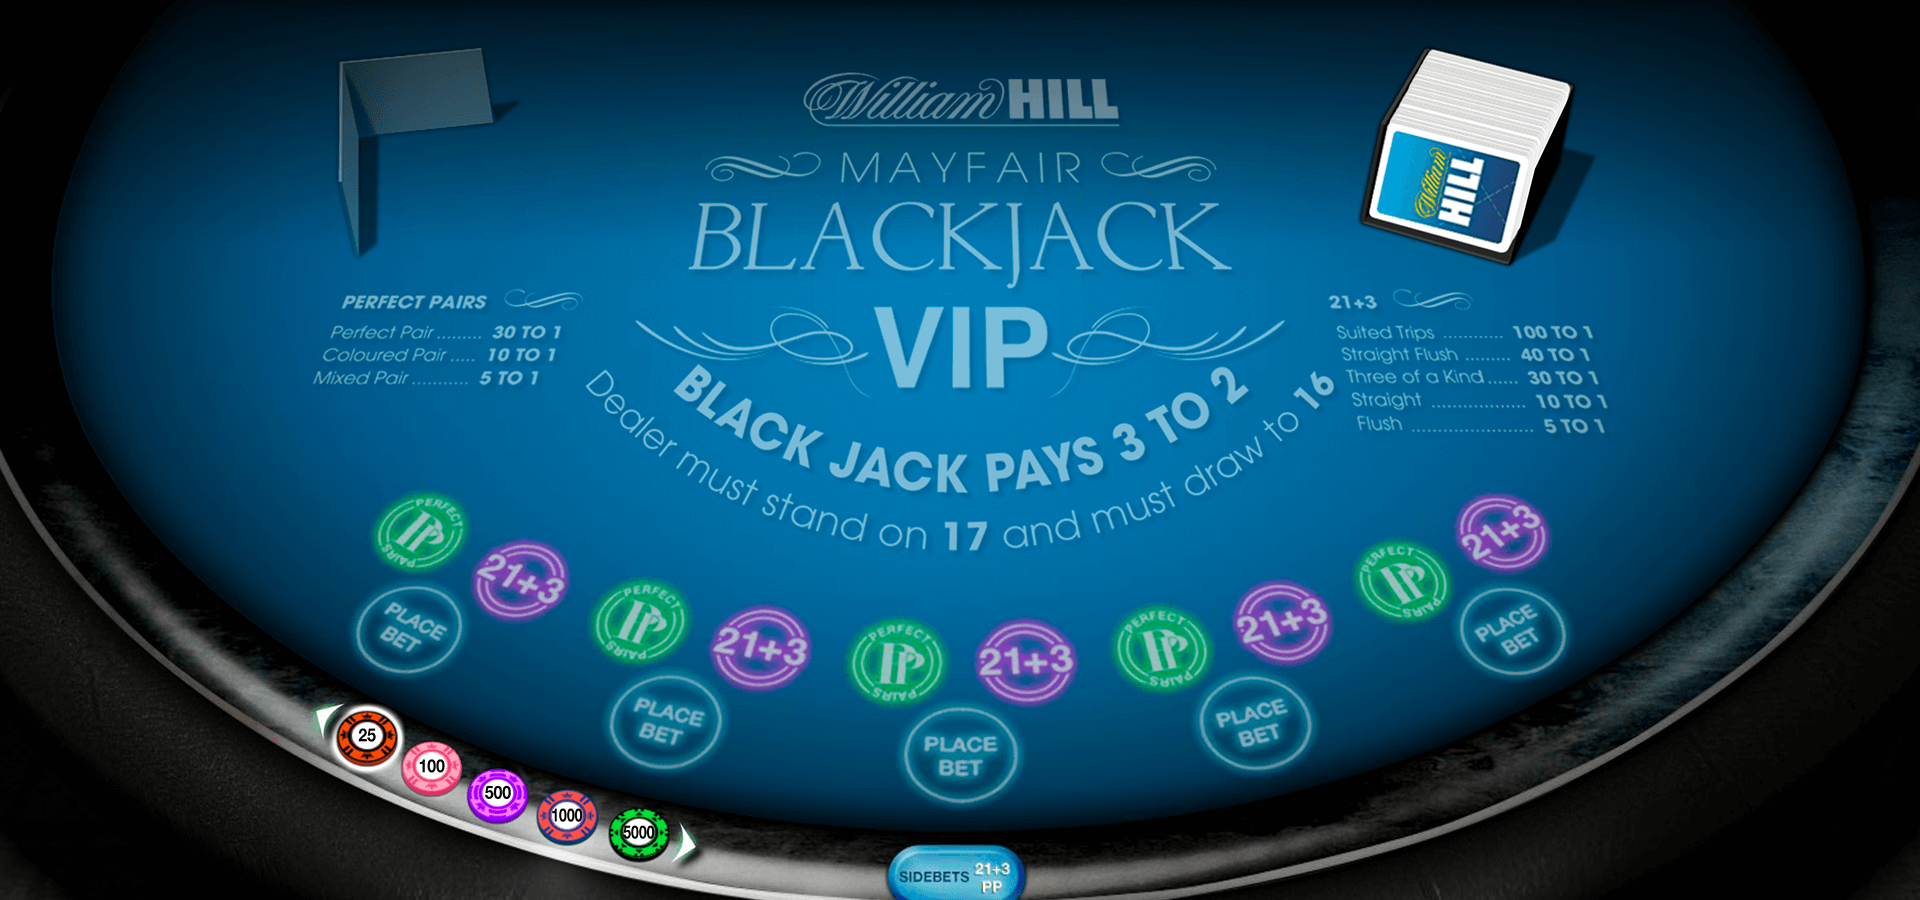 William hill app juegos betBigDollar com 530983